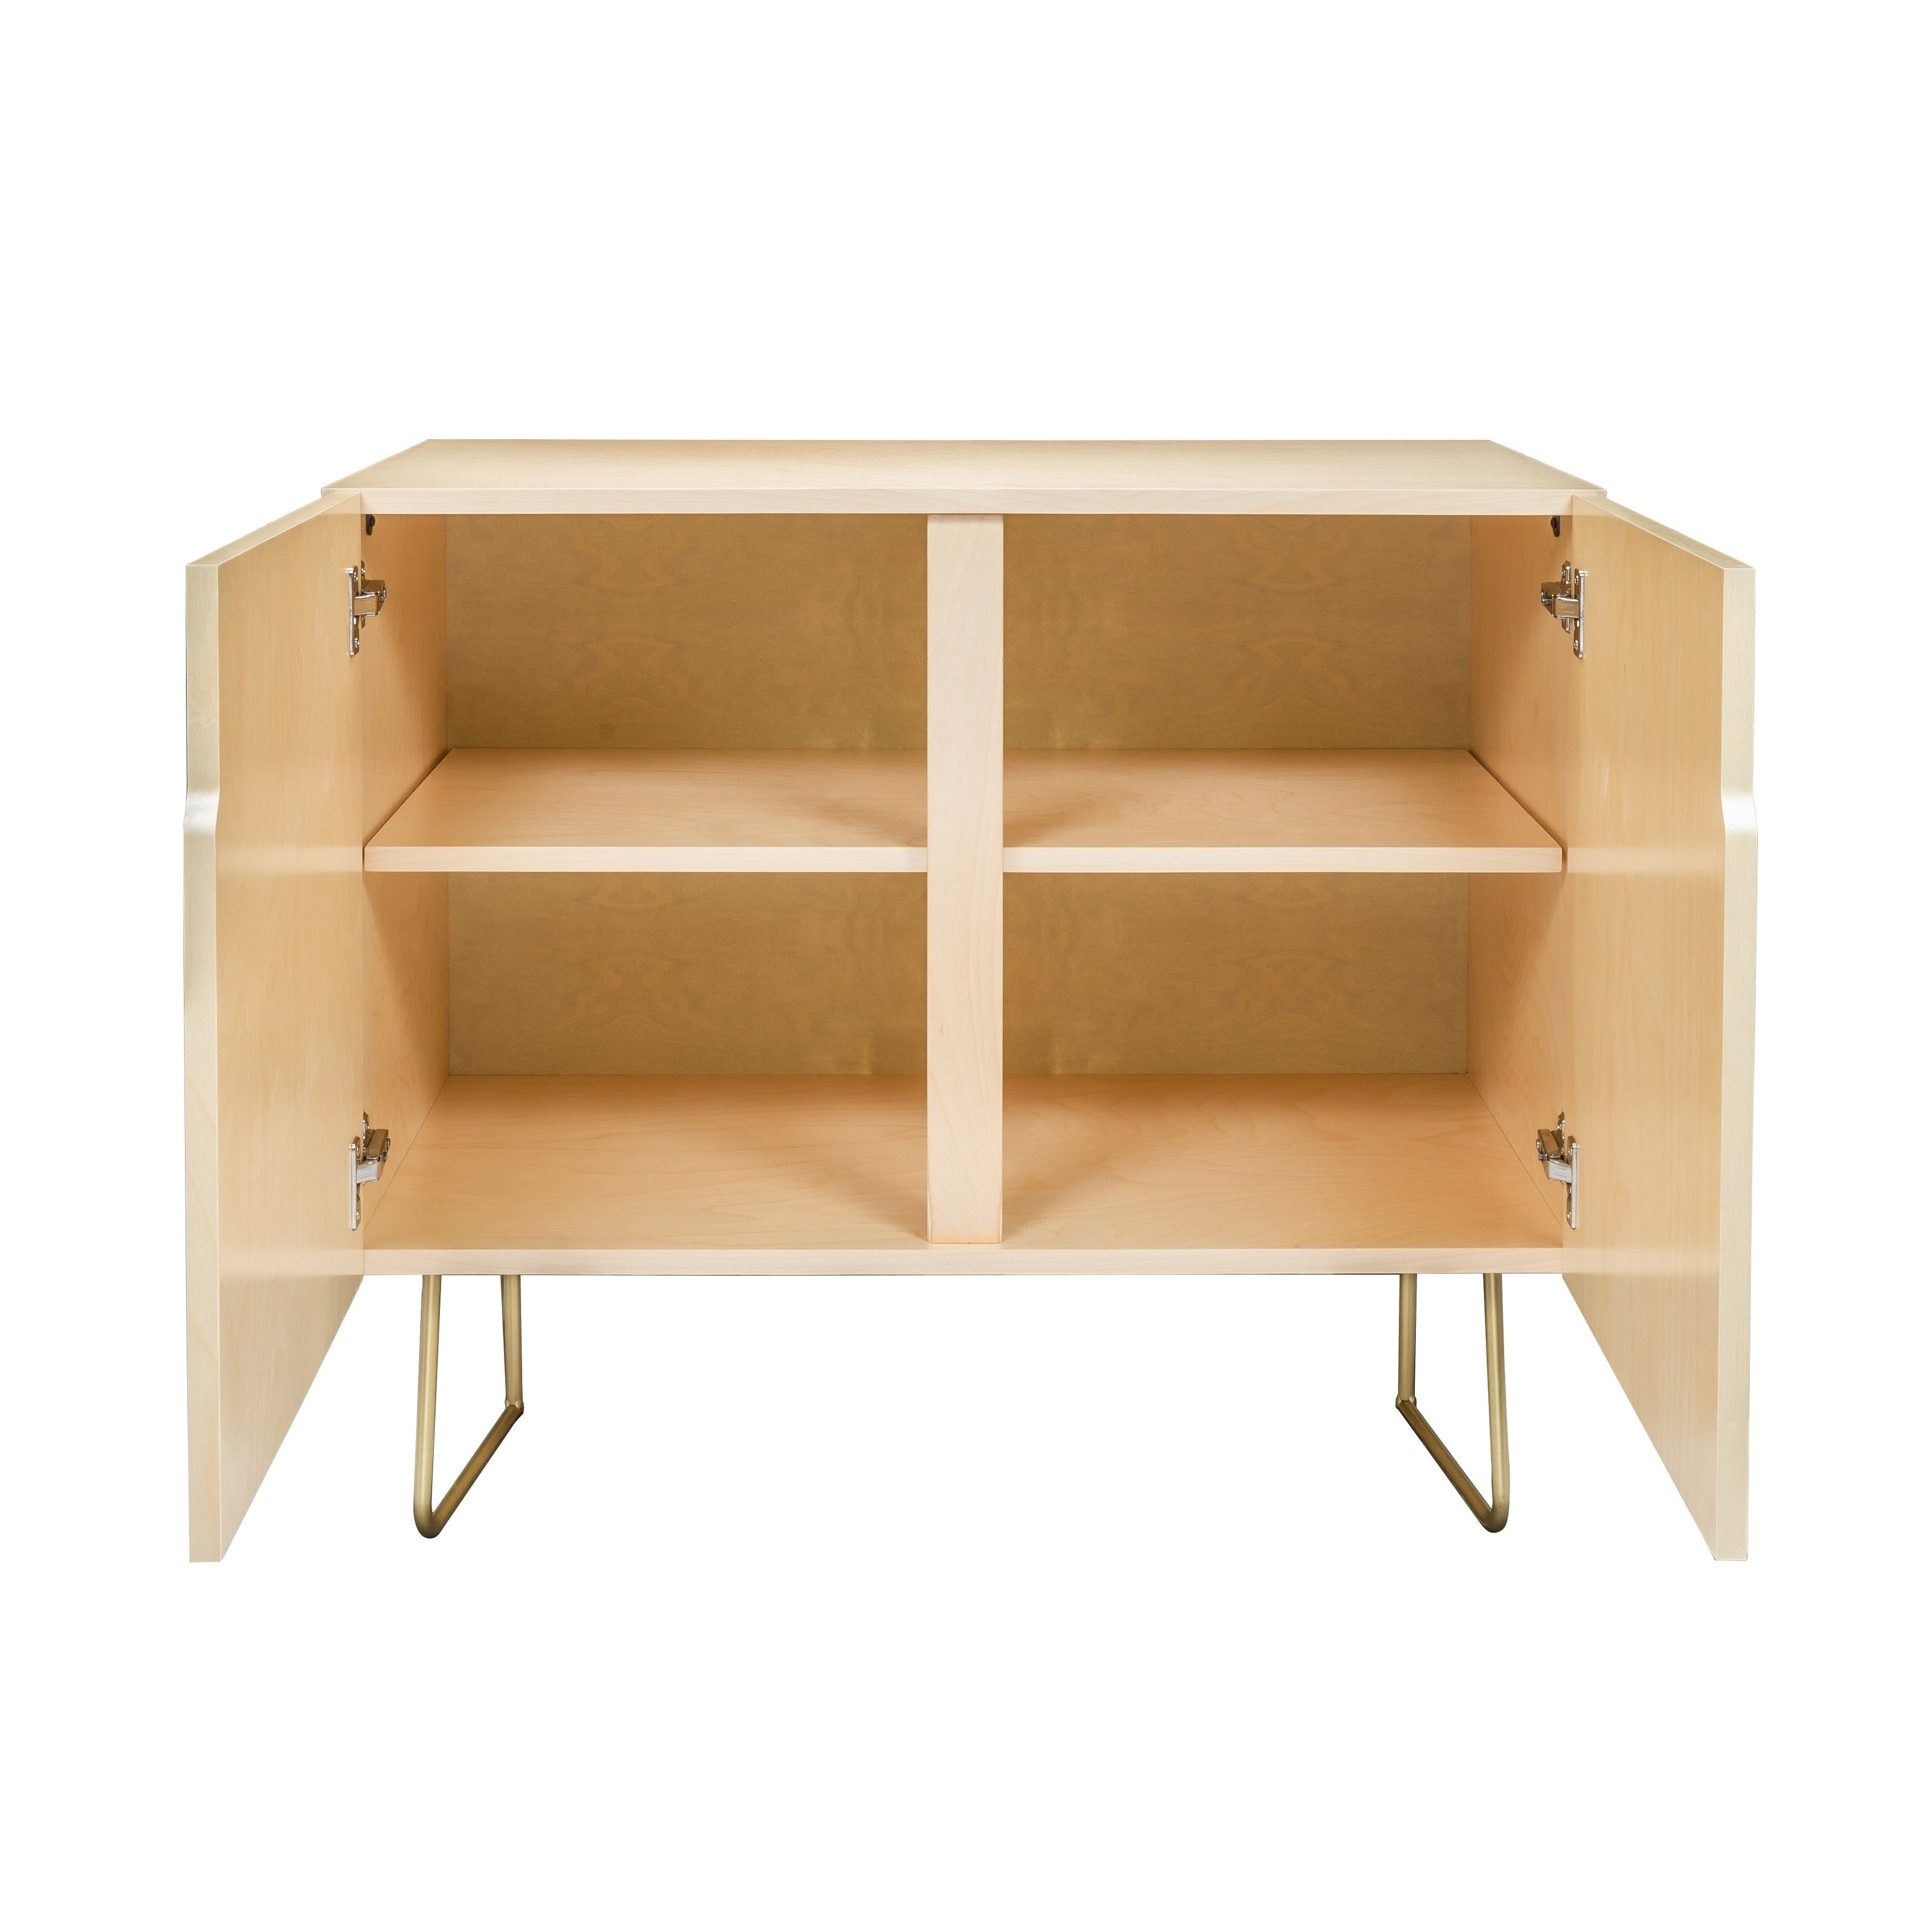 Deny Designs Colorful Leaves Credenza (Birch Or Walnut, 2 Leg Options) inside Colorful Leaves Credenzas (Image 11 of 30)